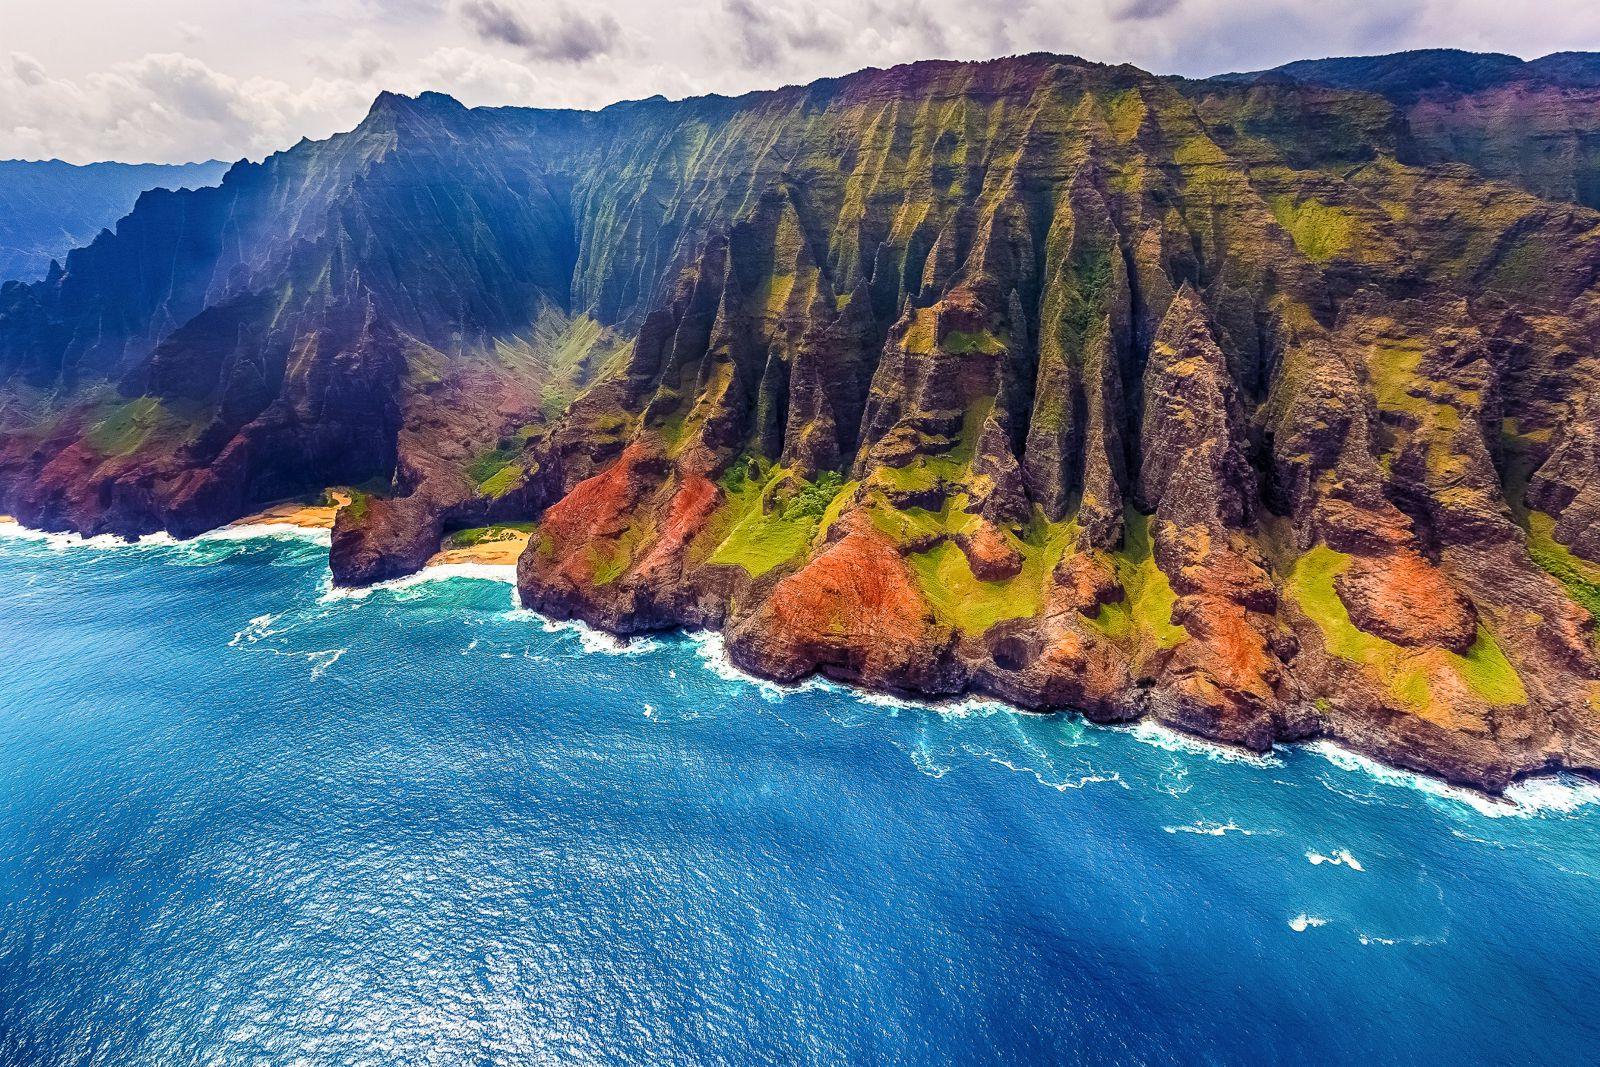 11 Amazing Places You Should Visit In The USA But Have Probably Never Heard Of!